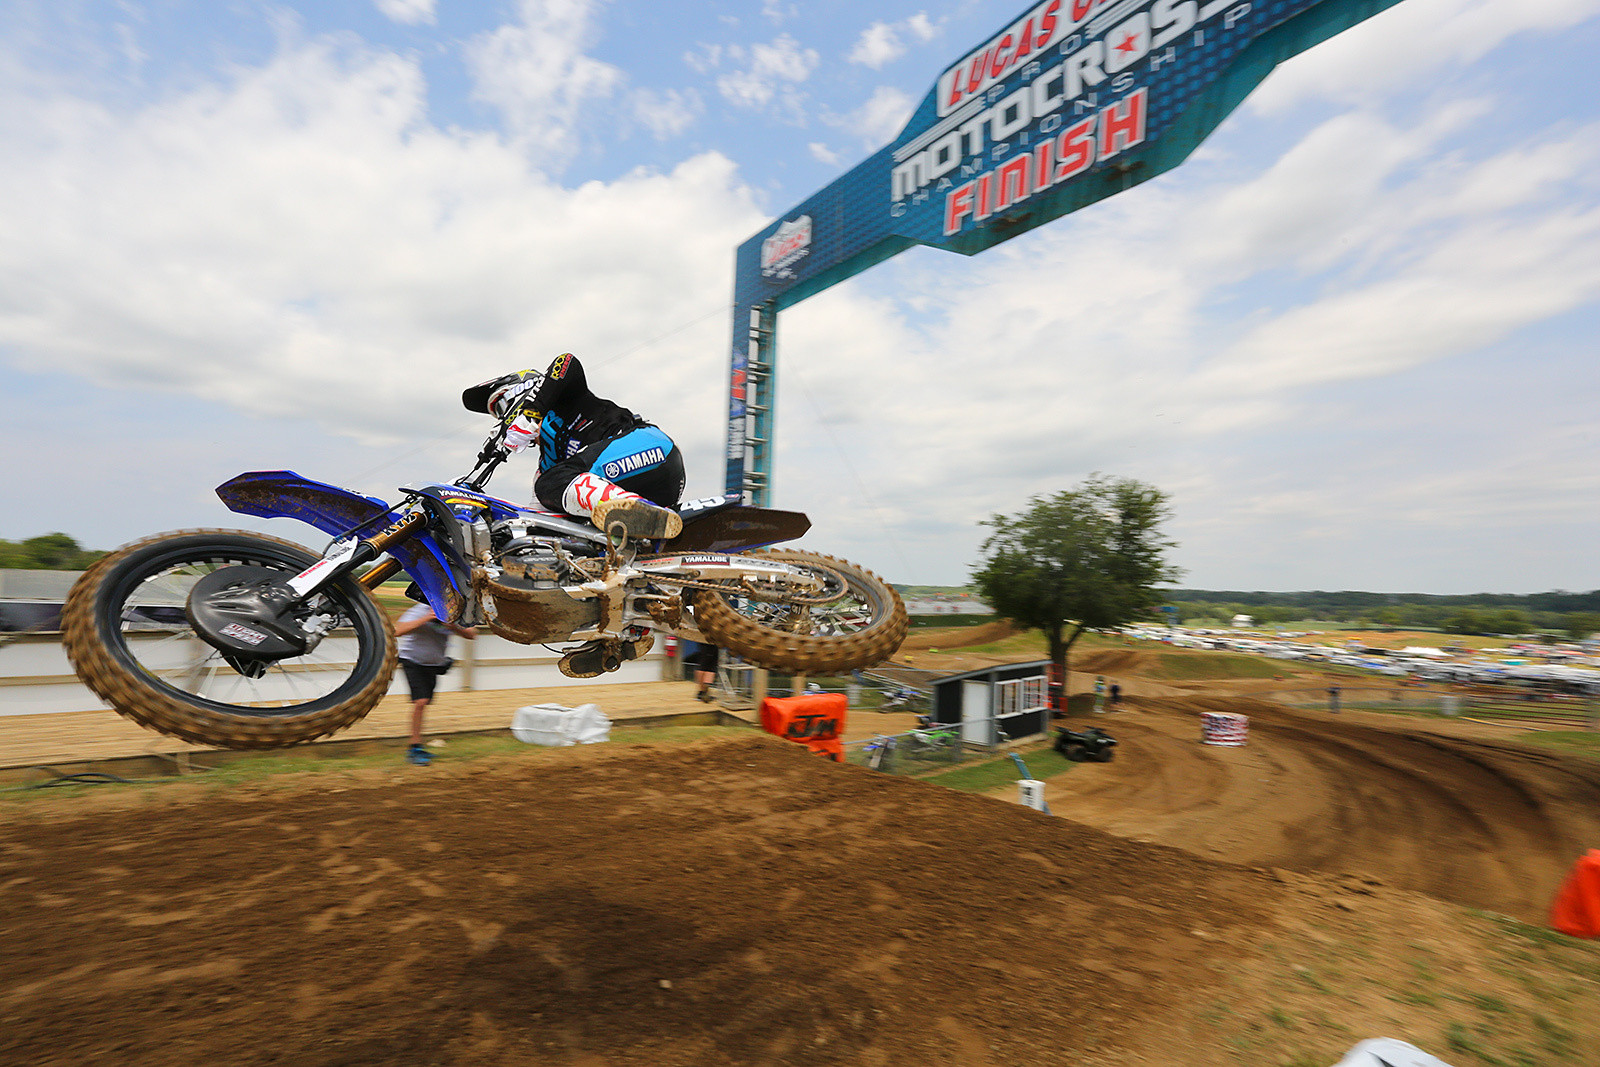 Mitchell Harrison has made huge strides forward in speed and fitness this season, and he put in his best-ever moto result, a second, hot on the heels of Zach Osborne.